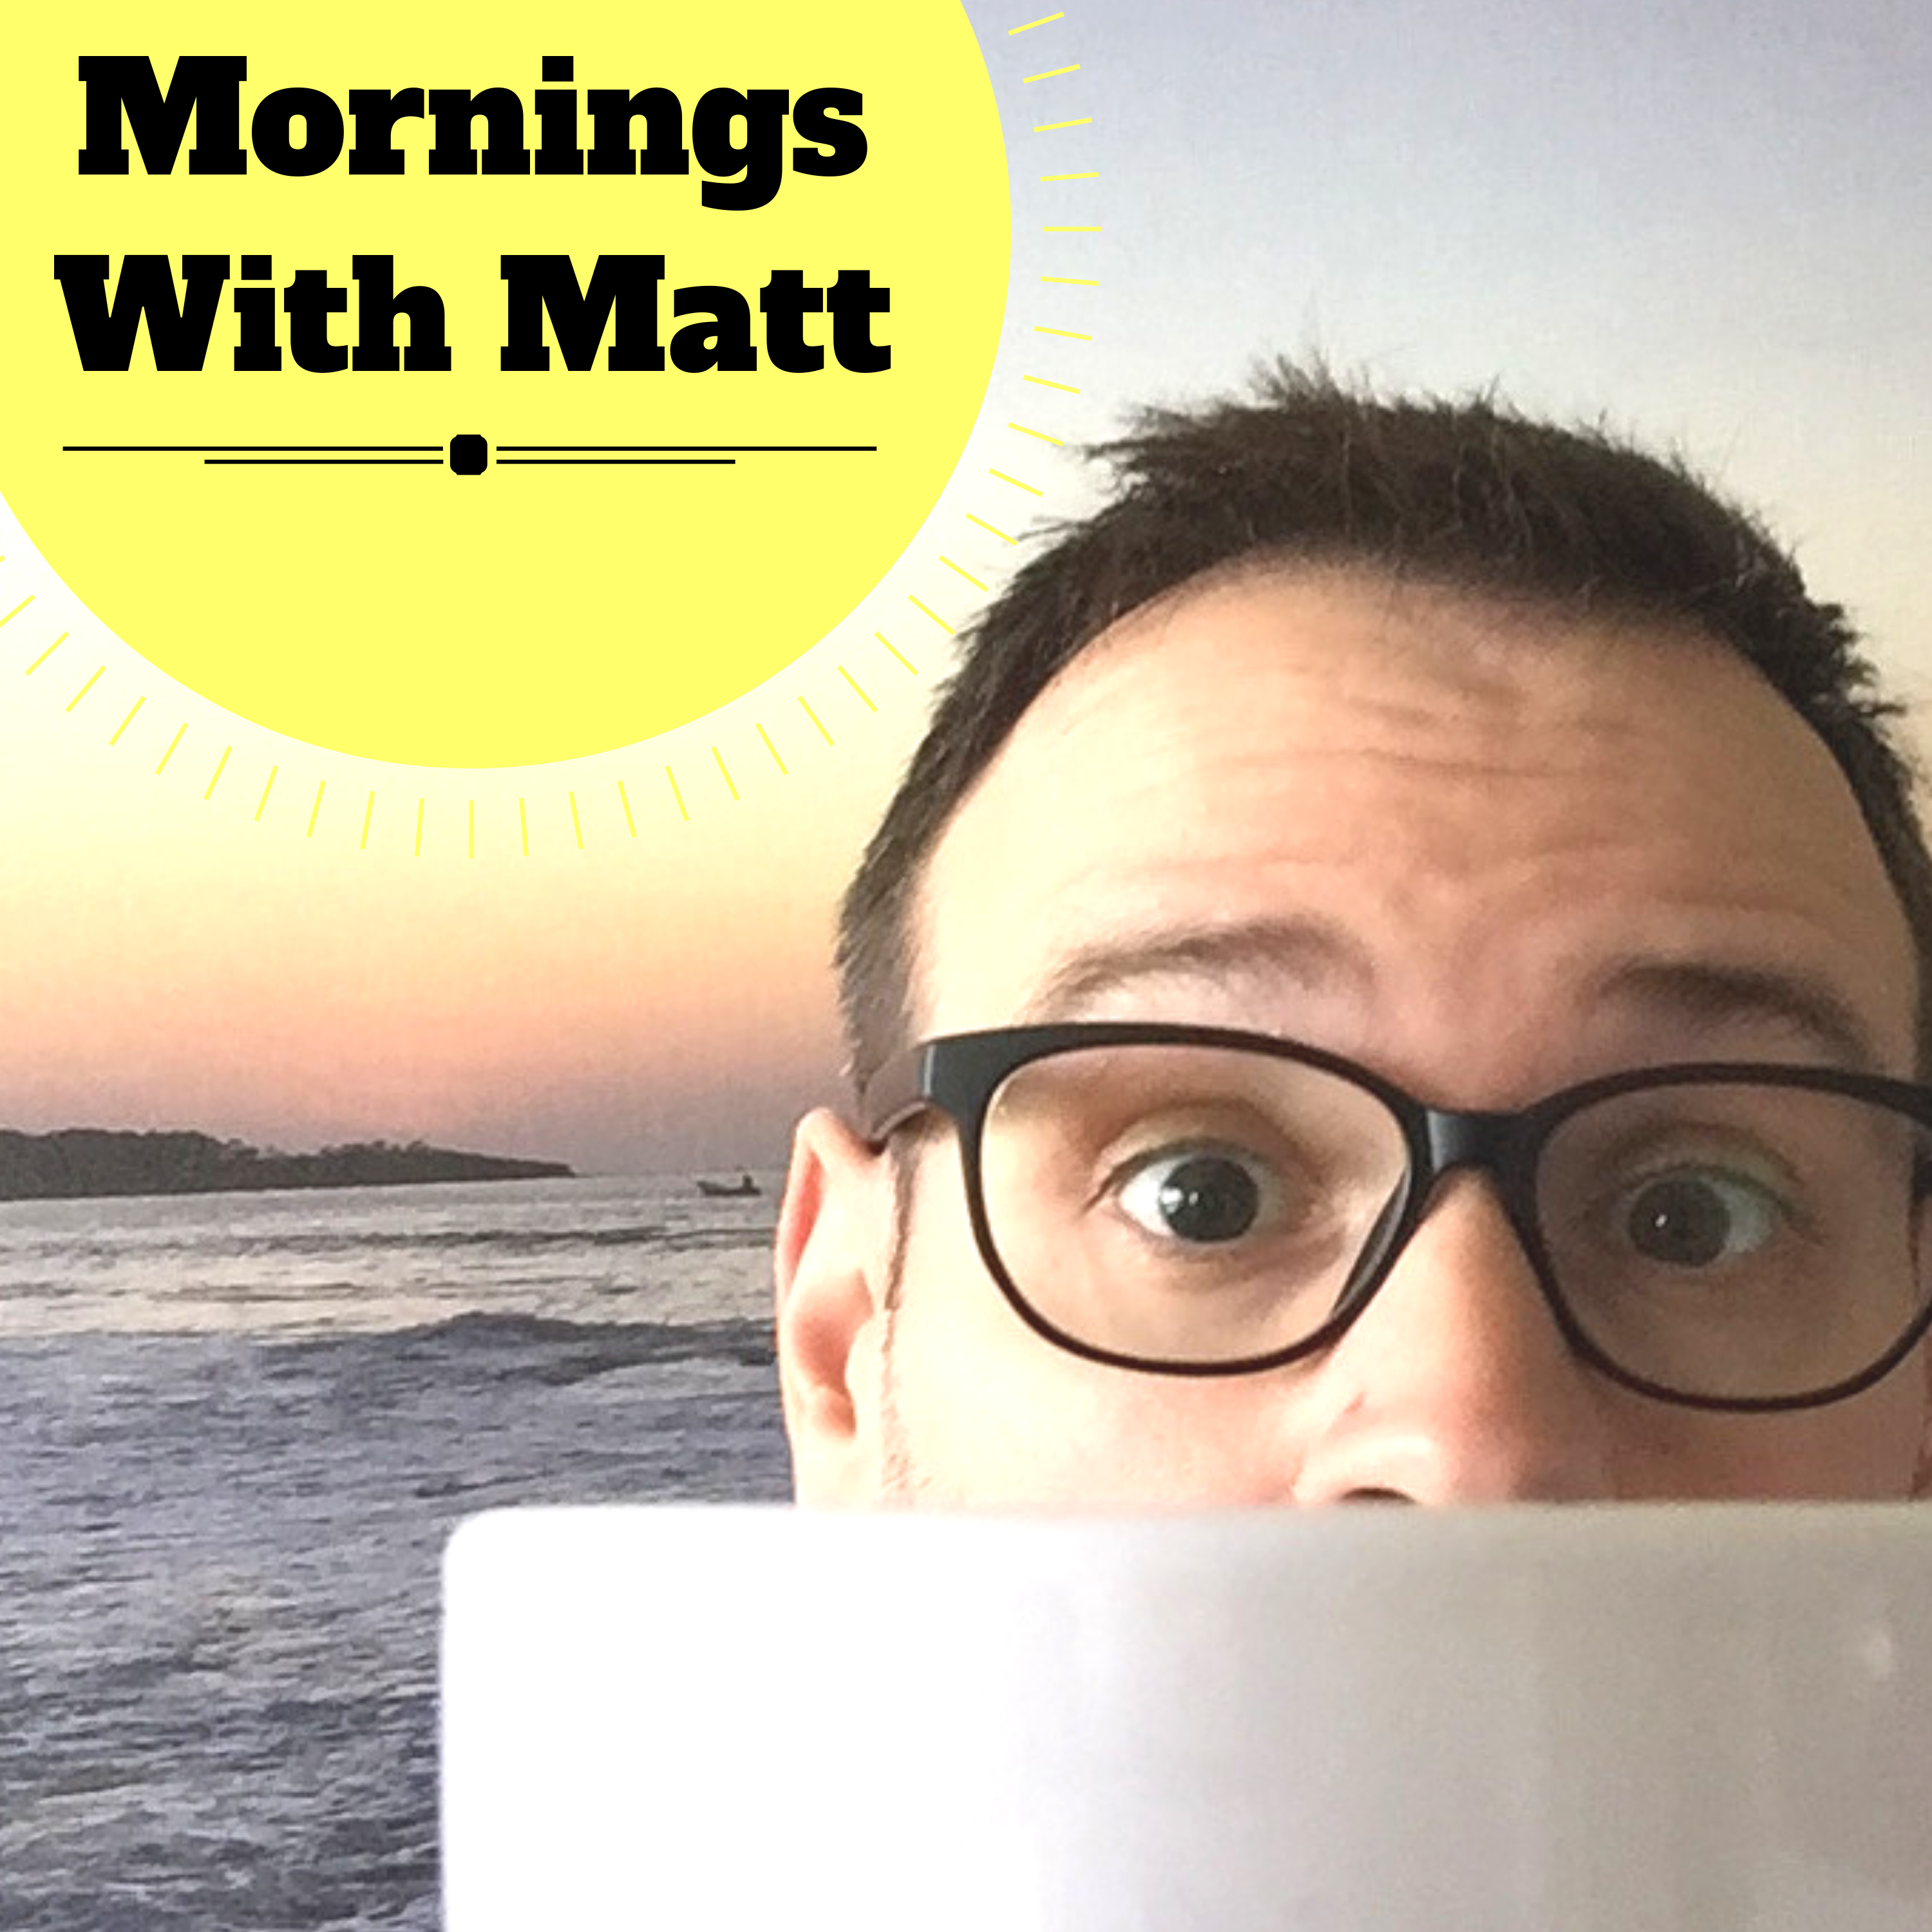 Mornings with Matt